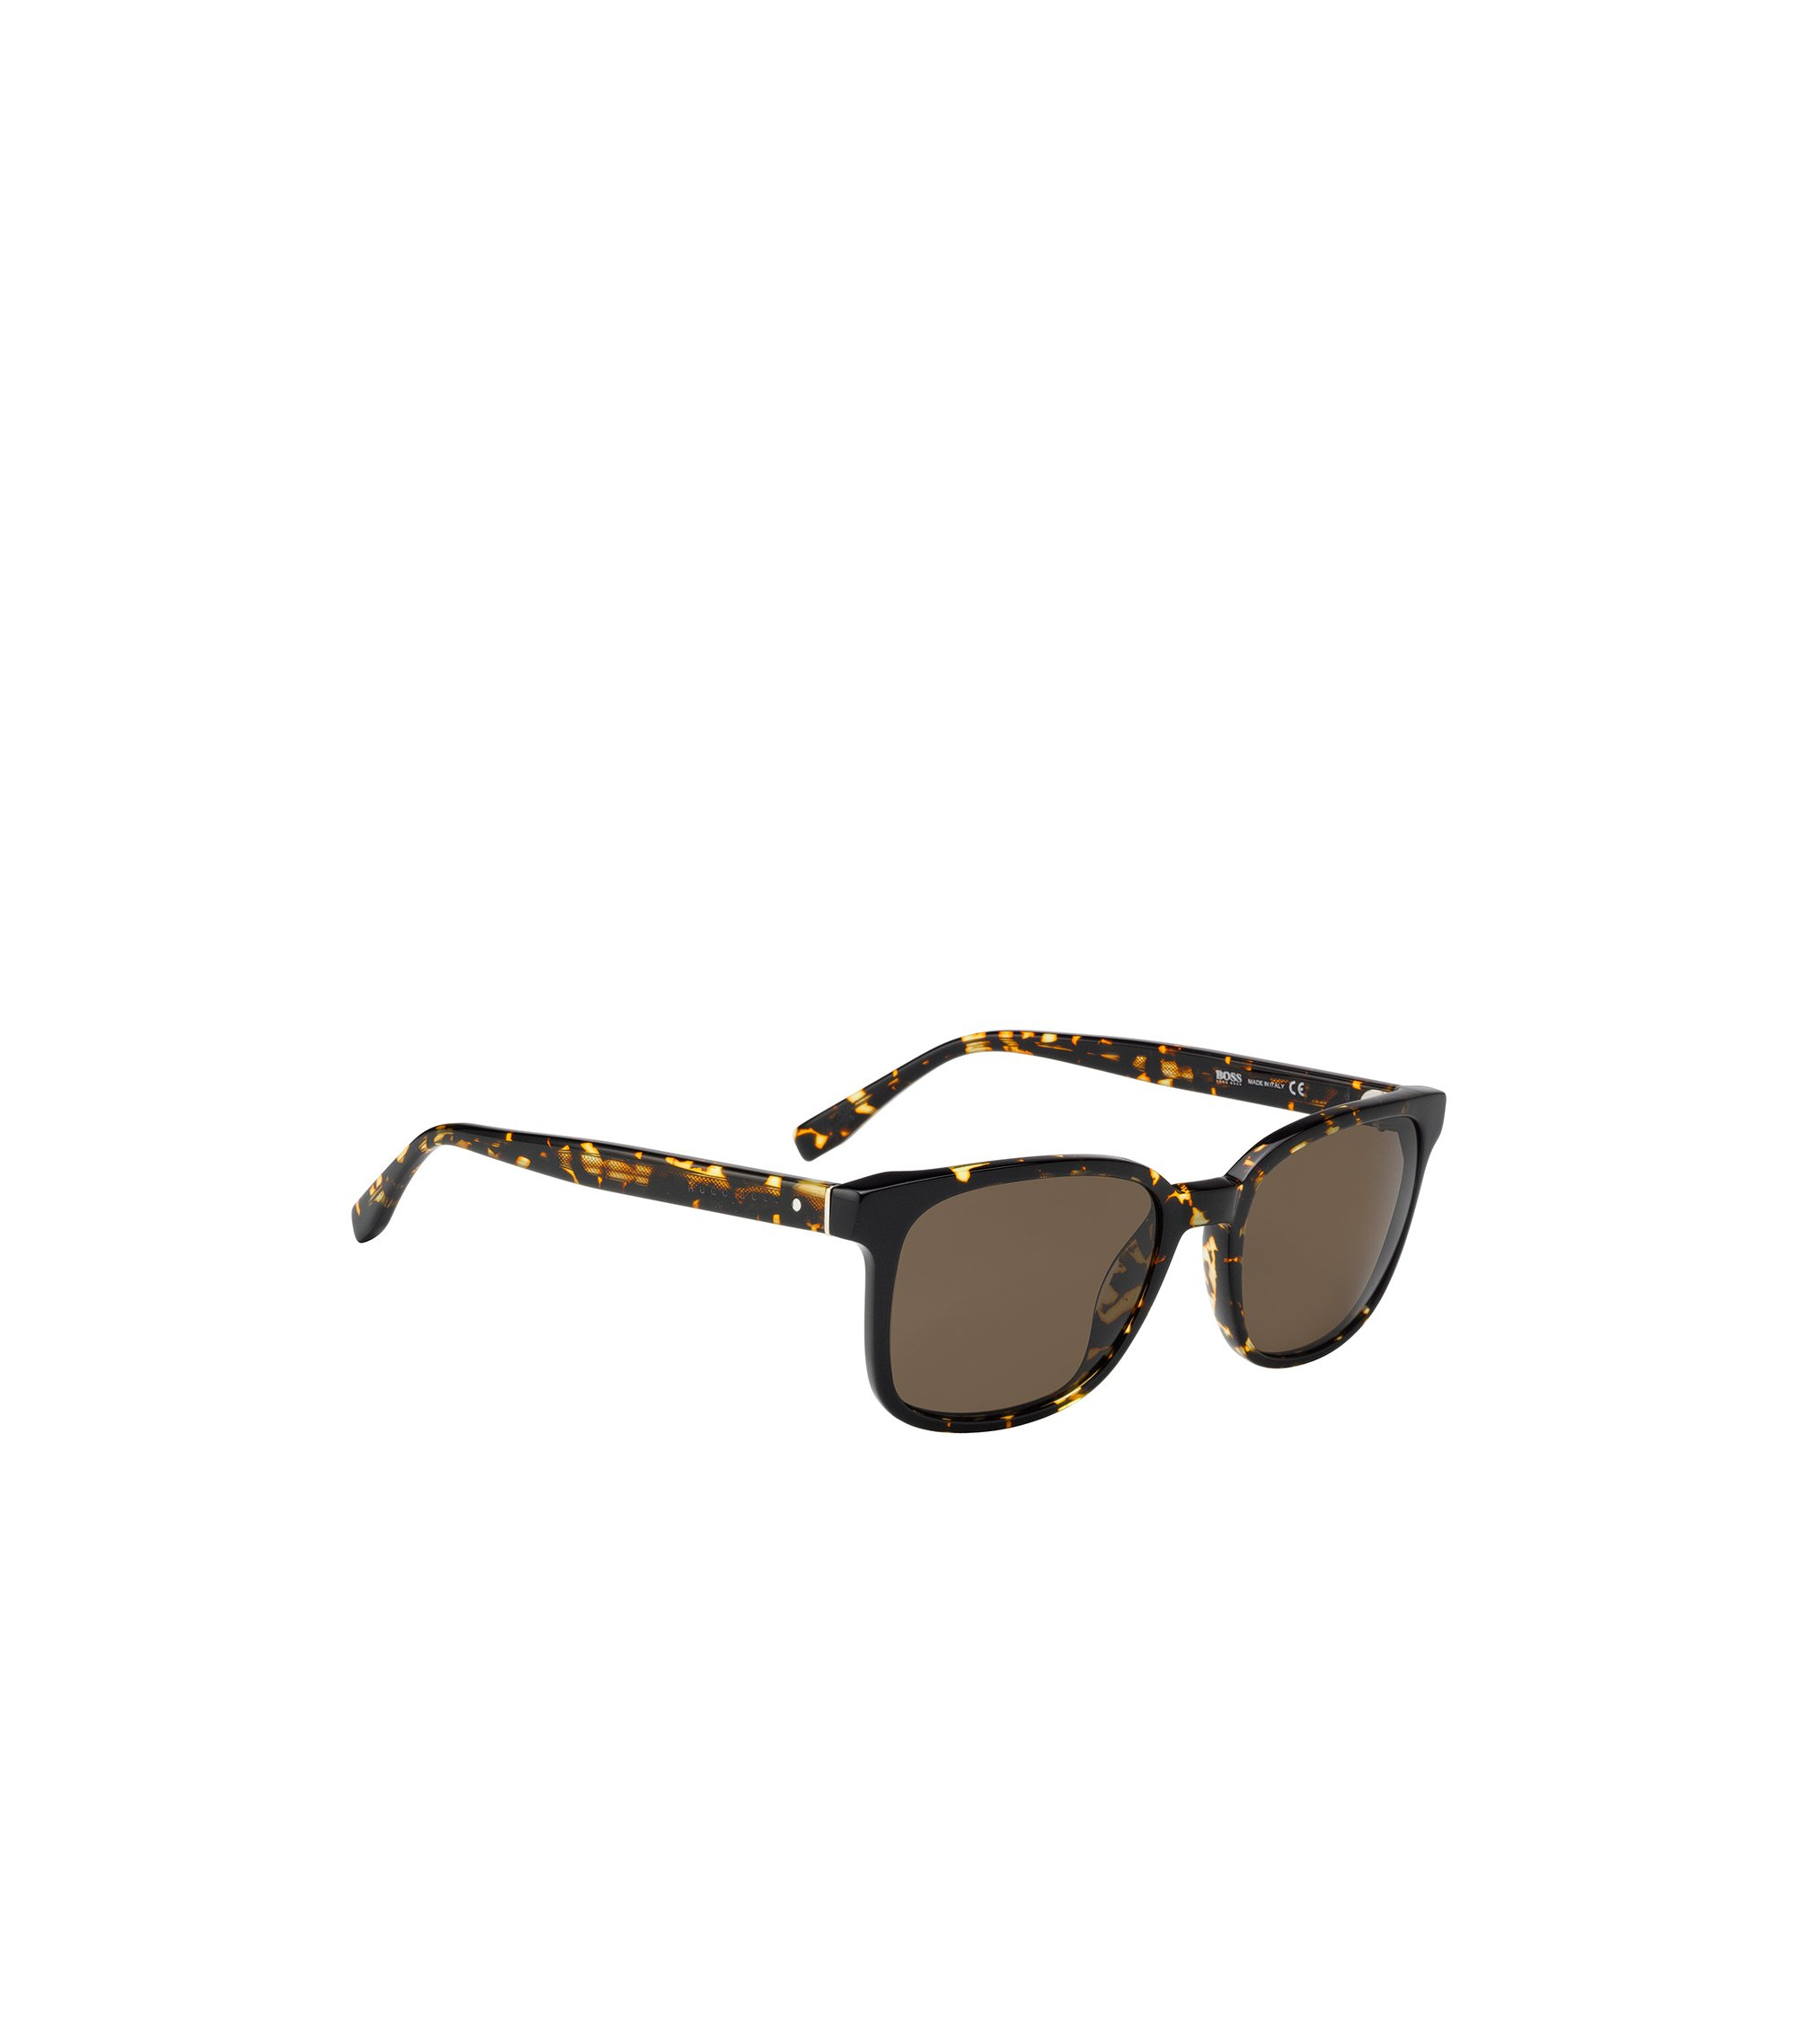 Sonnenbrille mit Havanna-Muster: 'BOSS 0802', Assorted-Pre-Pack